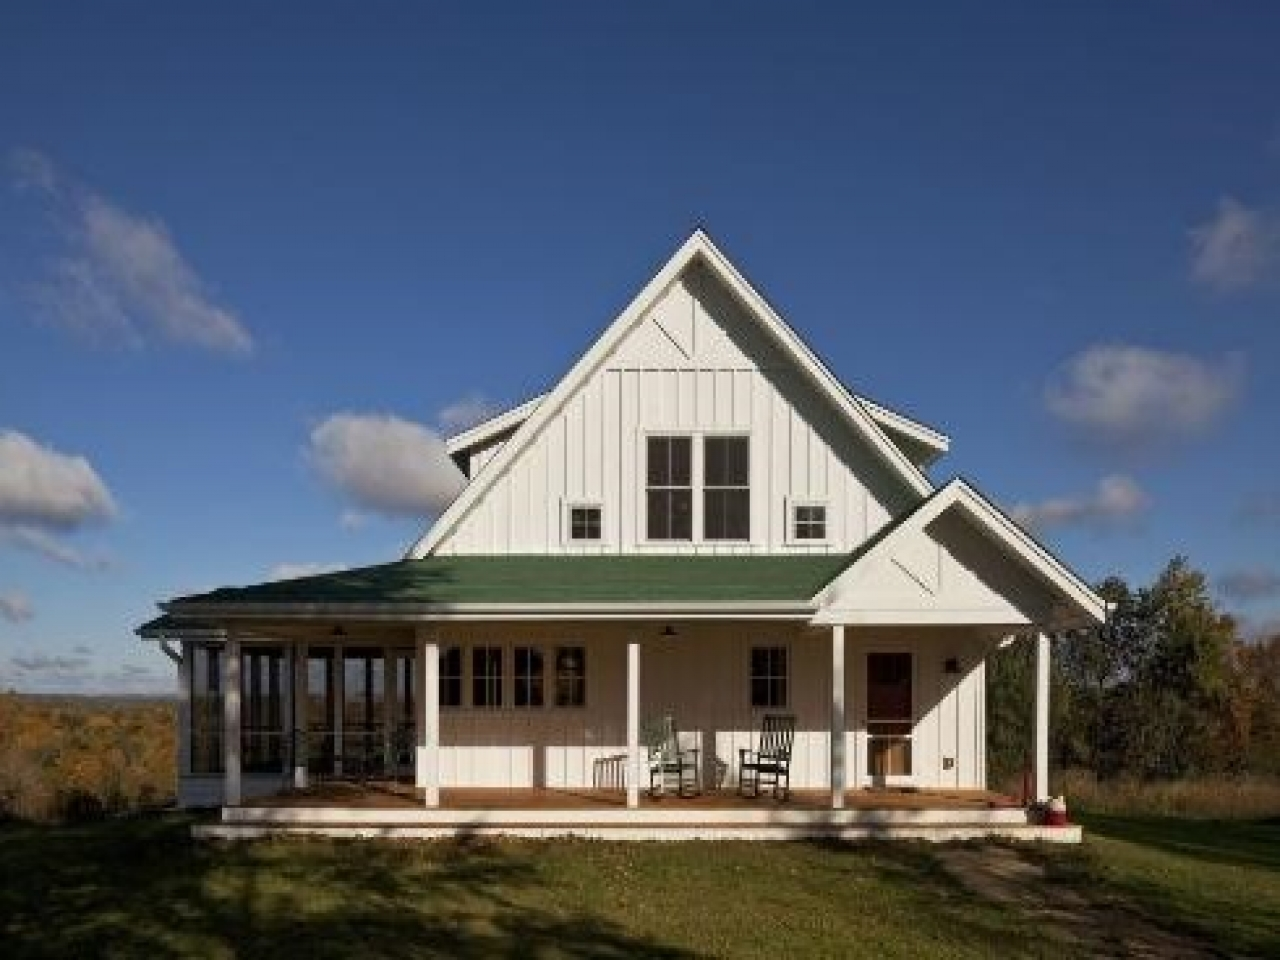 Standout Farmhouse Designs Single Story Farmhouse With Wrap Around Porch One Story